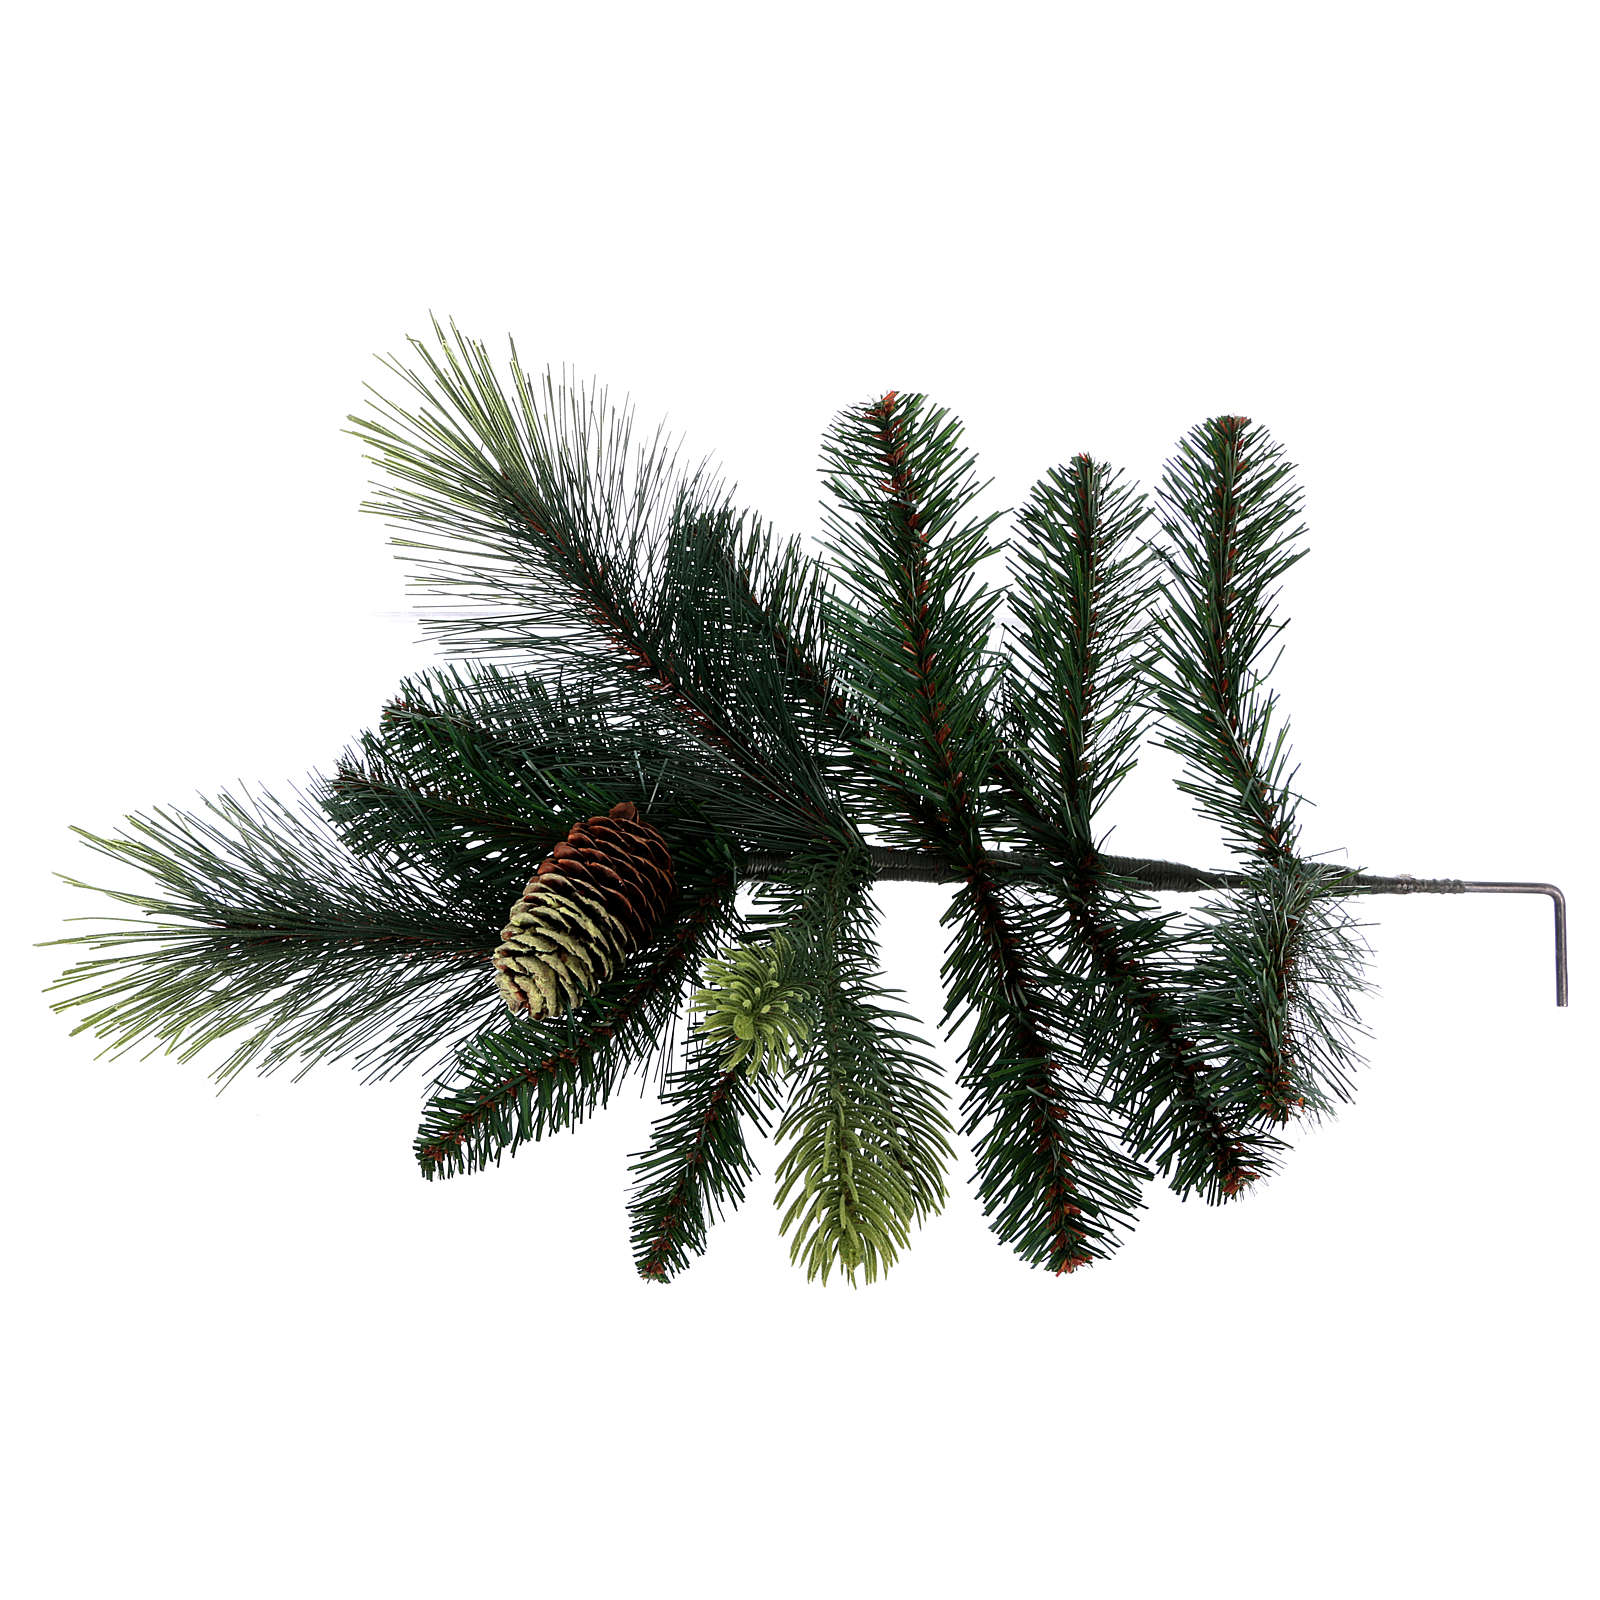 Christmas tree 180 cm, green with pine cones Carolina 3